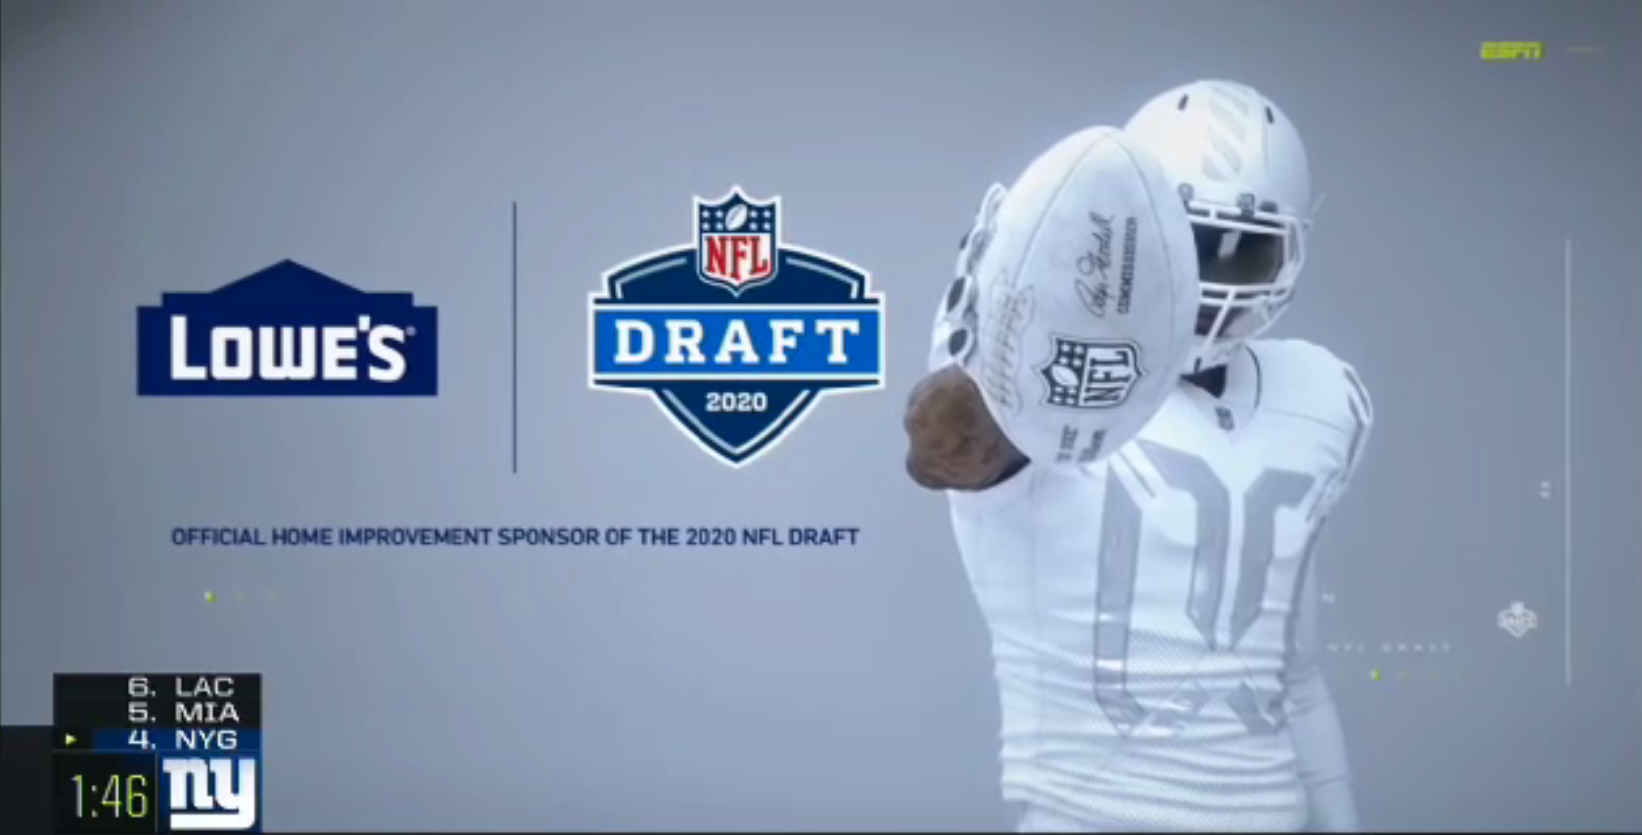 The NFL Draft 2020 Compilation Featured Image #1